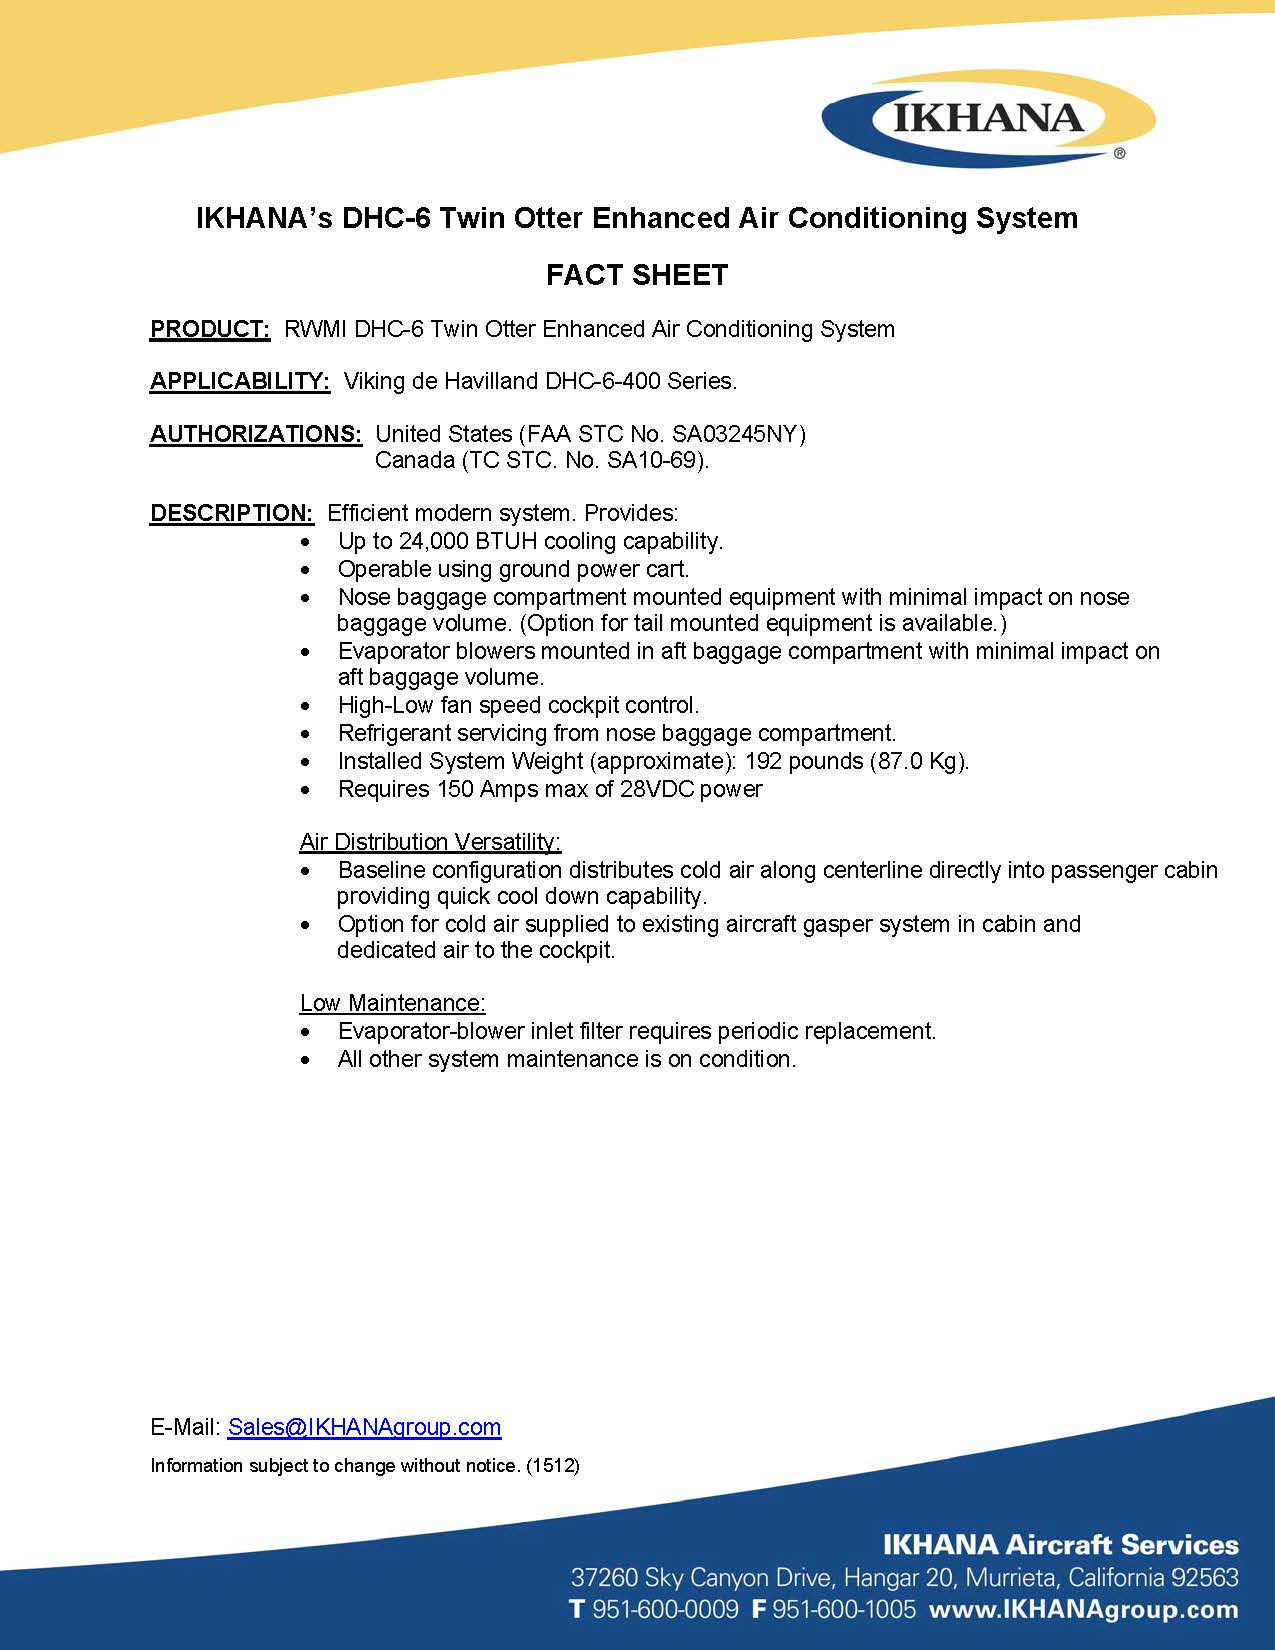 IKHANA's DHC-6 Twin Otter Enhanced Air Conditioning System